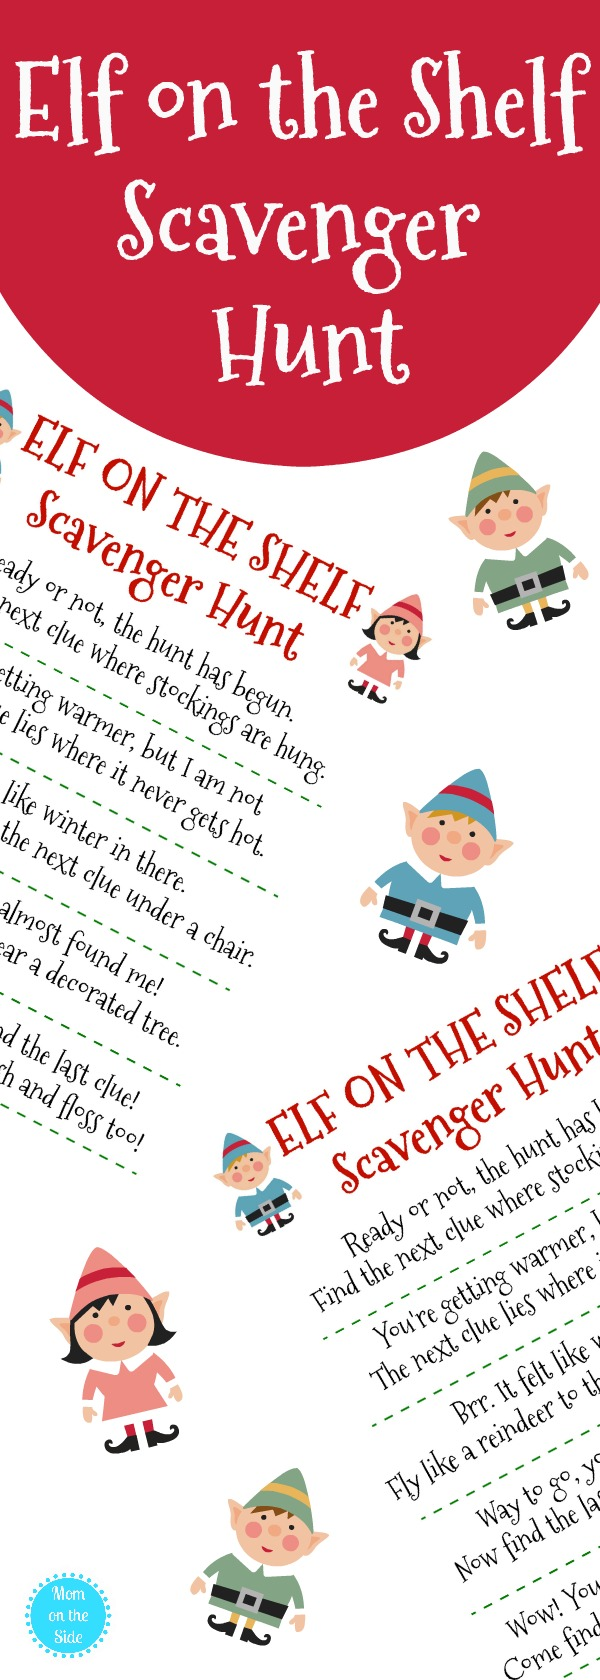 graphic about Christmas Scavenger Hunt Printable Clues titled Printable Elf upon the Shelf Scavenger Hunt Mother upon the Facet